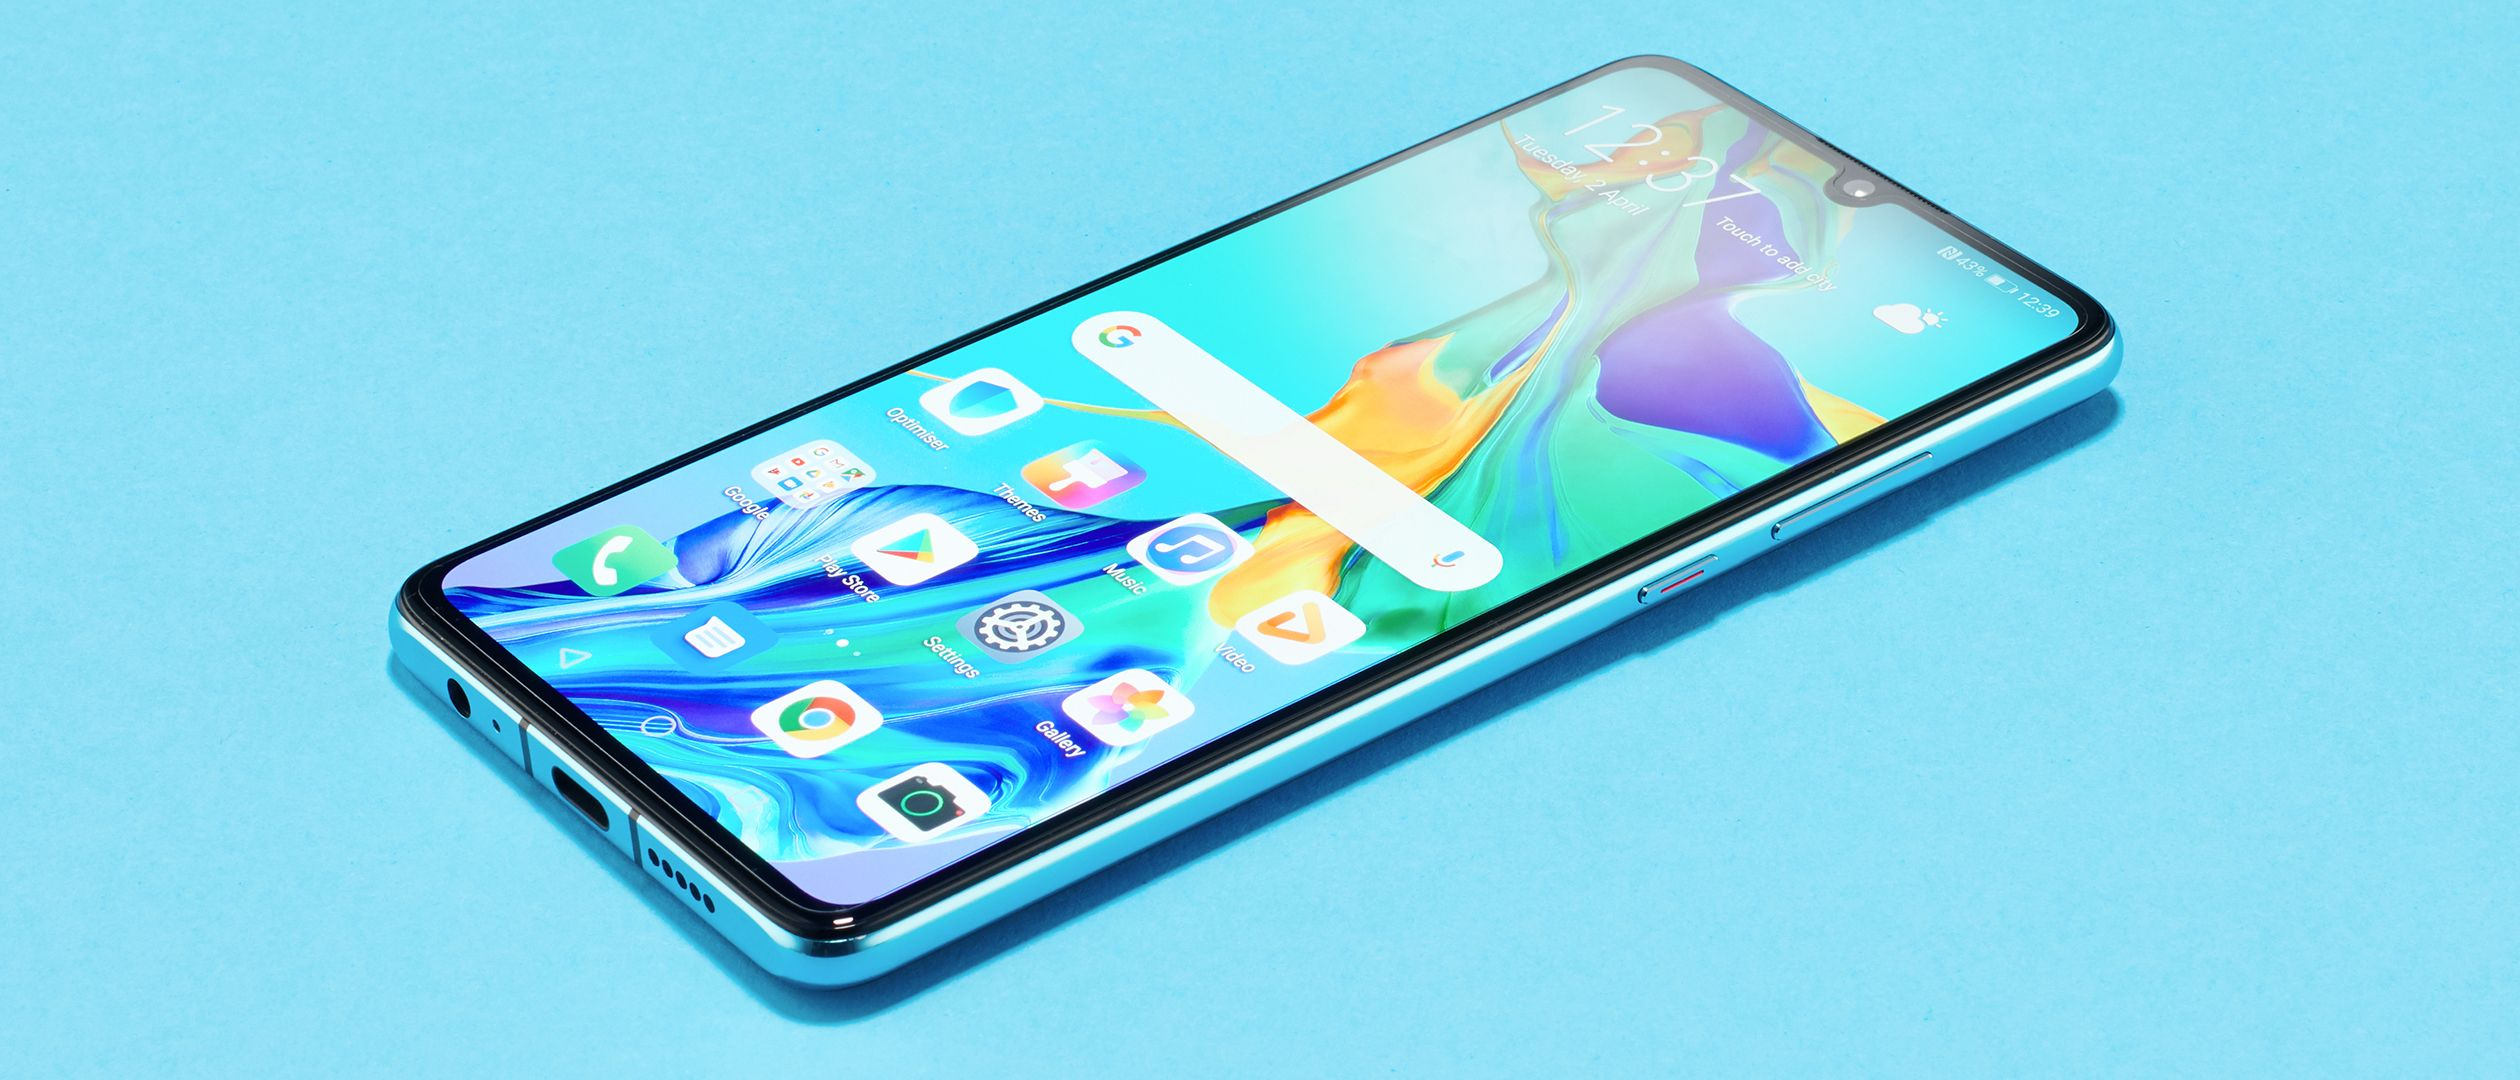 HuaweiP30 (With images) Iphone deals, Huawei, Smartphone